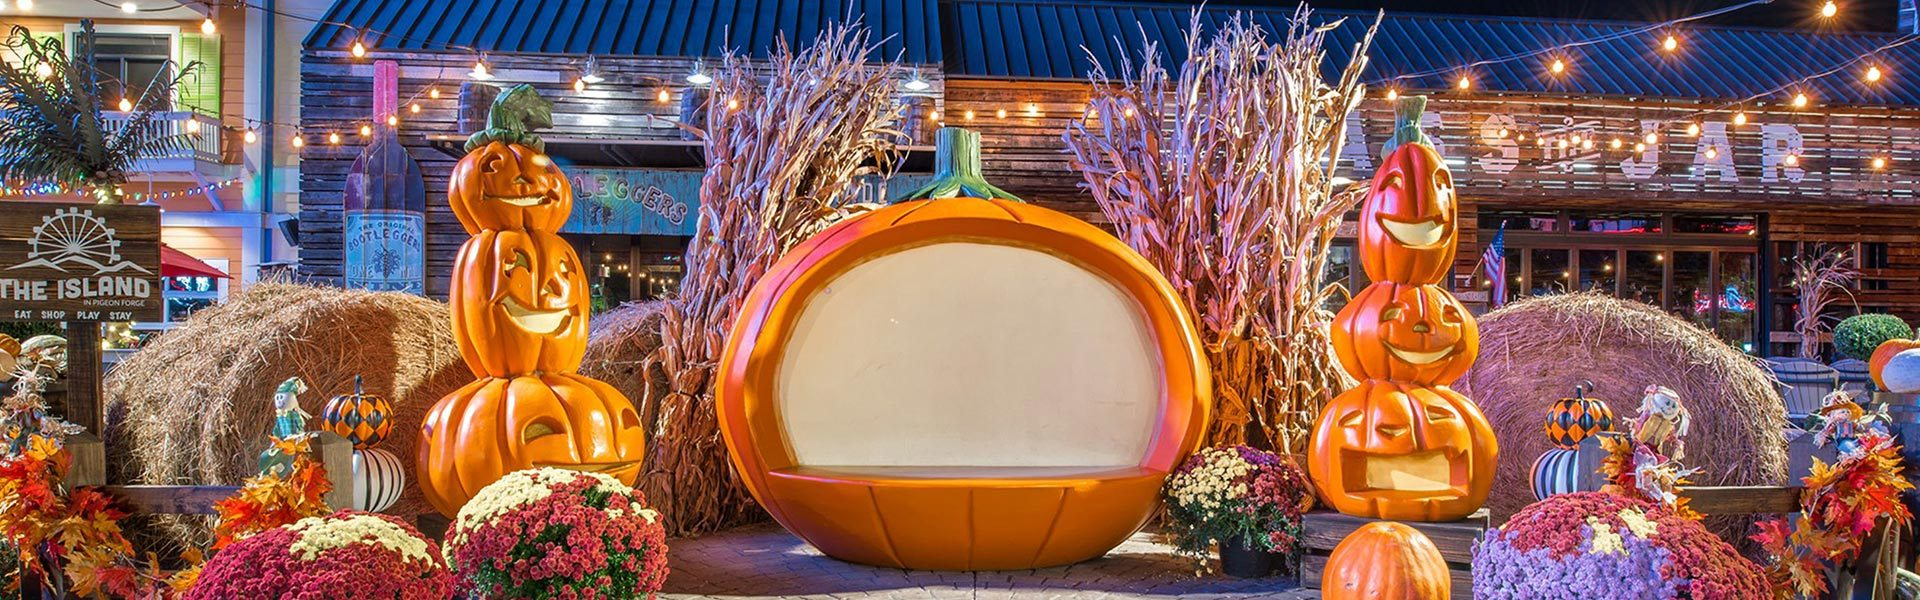 Outdoor Commercial Autumn Photo Display with Giant Pumpkins